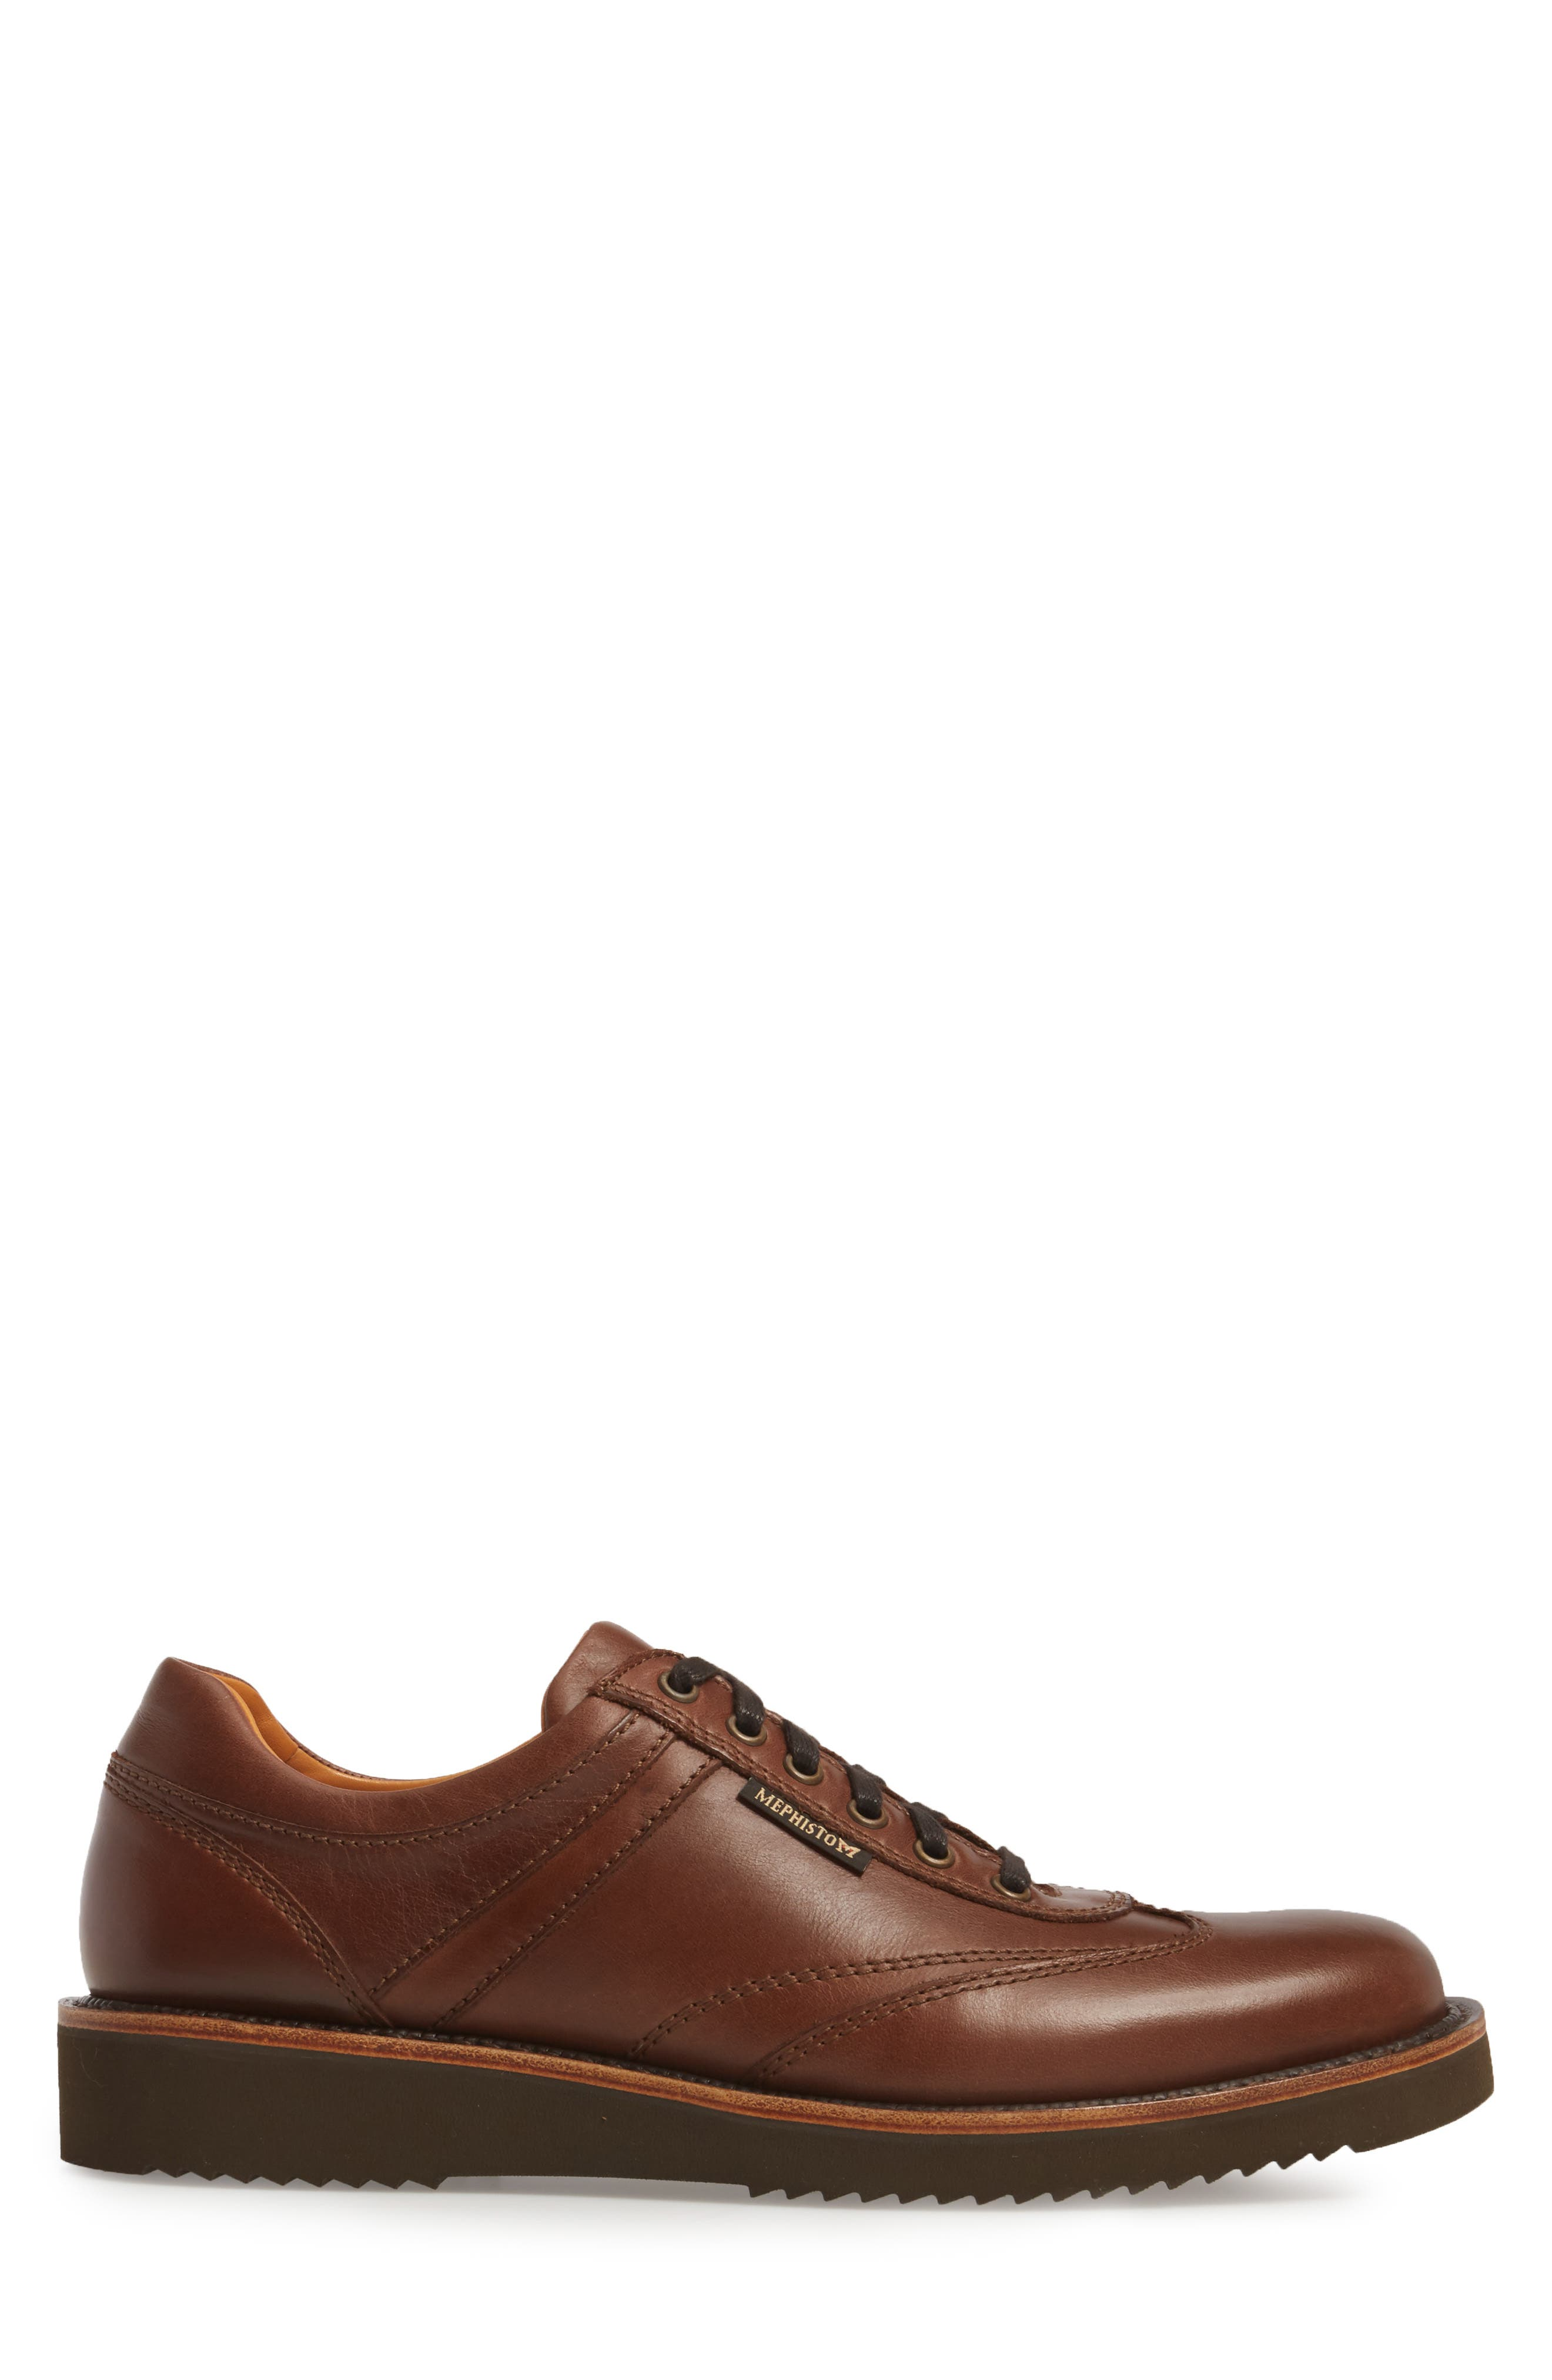 Adriano Sneaker,                             Alternate thumbnail 3, color,                             CHESTNUT LEATHER